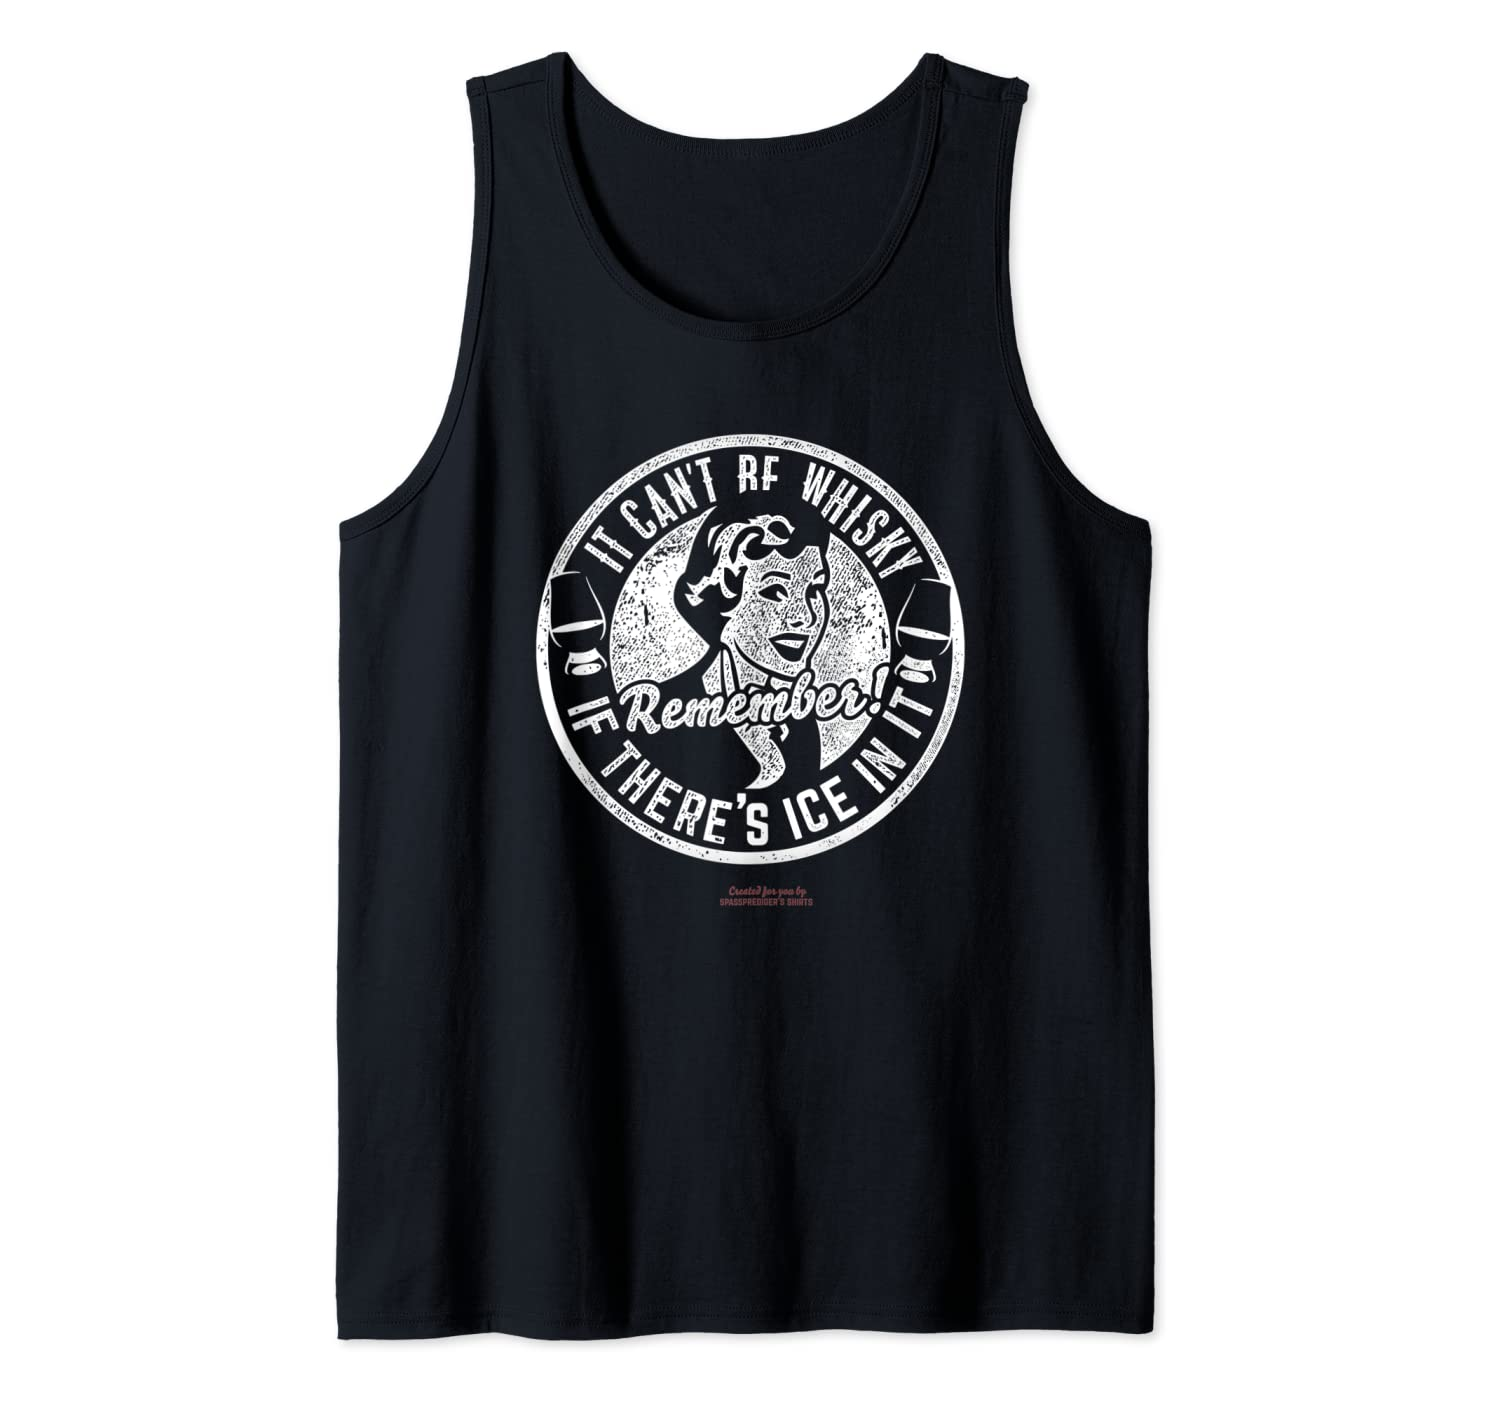 Whiskey Design Ice & Whisky - The Original Whiskey Tank Top